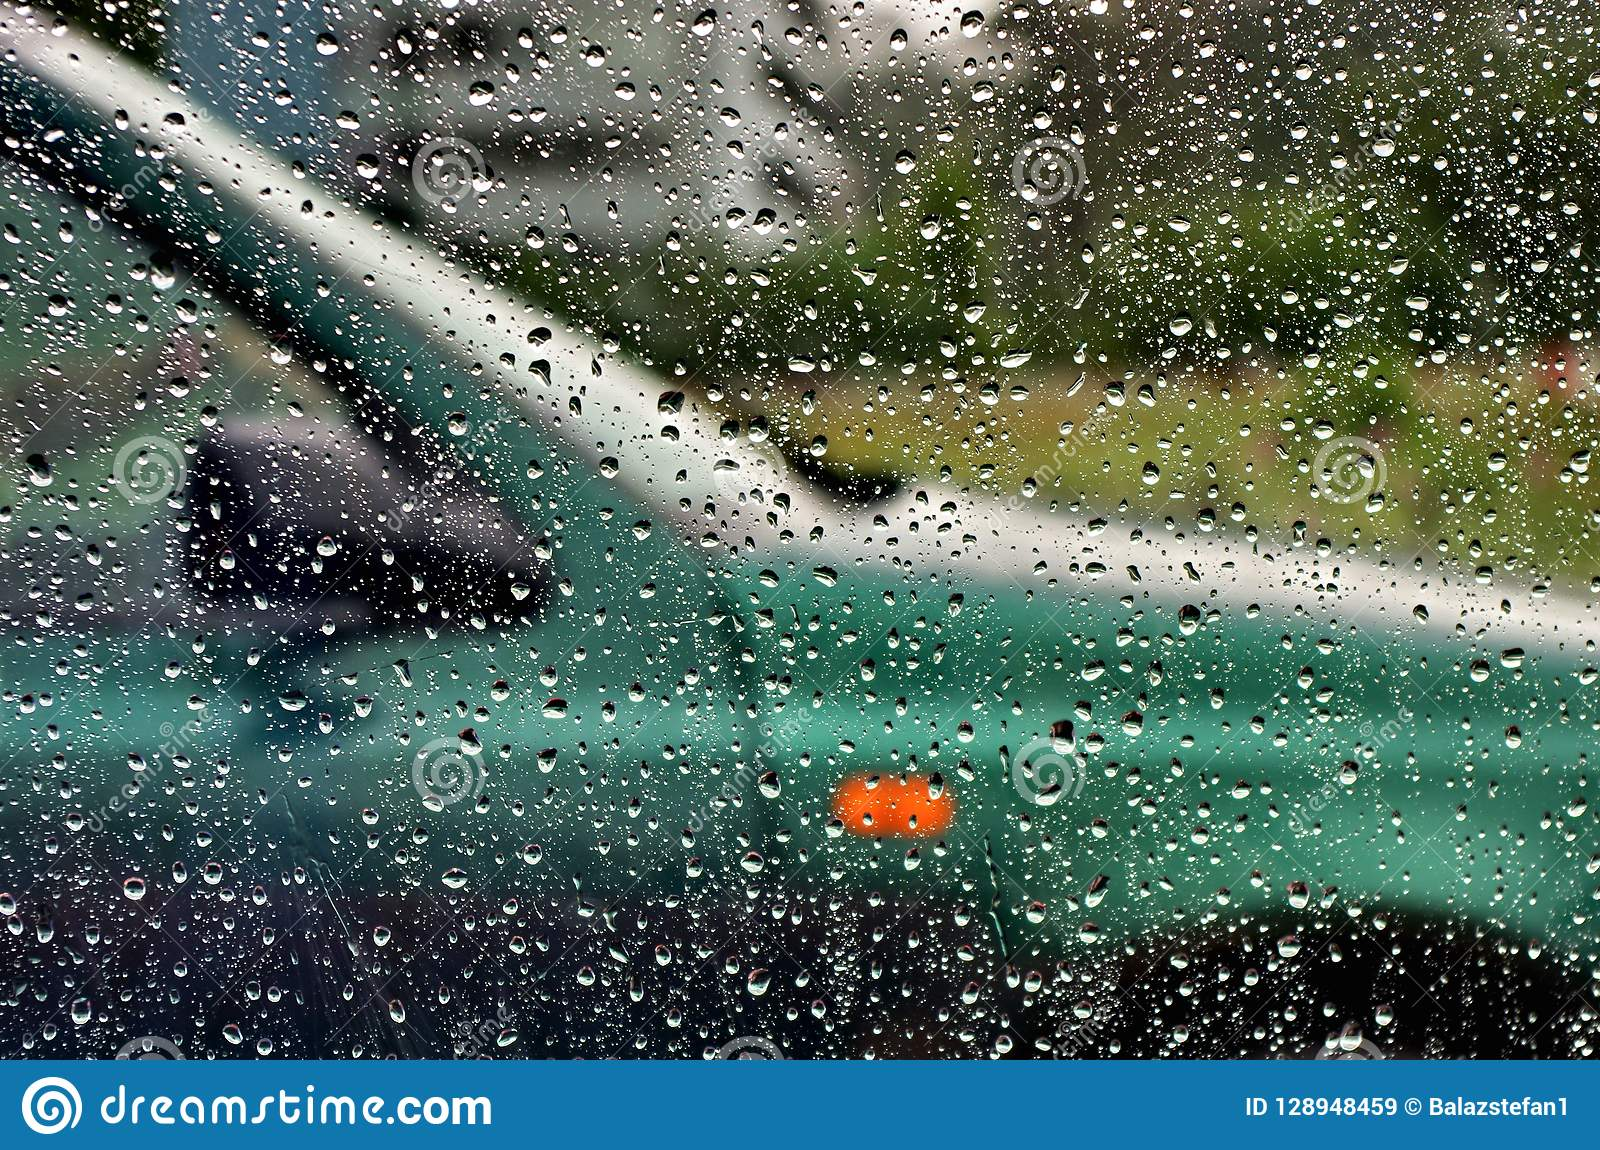 Traffic In Rainy Day With View Through Car Window With Rain